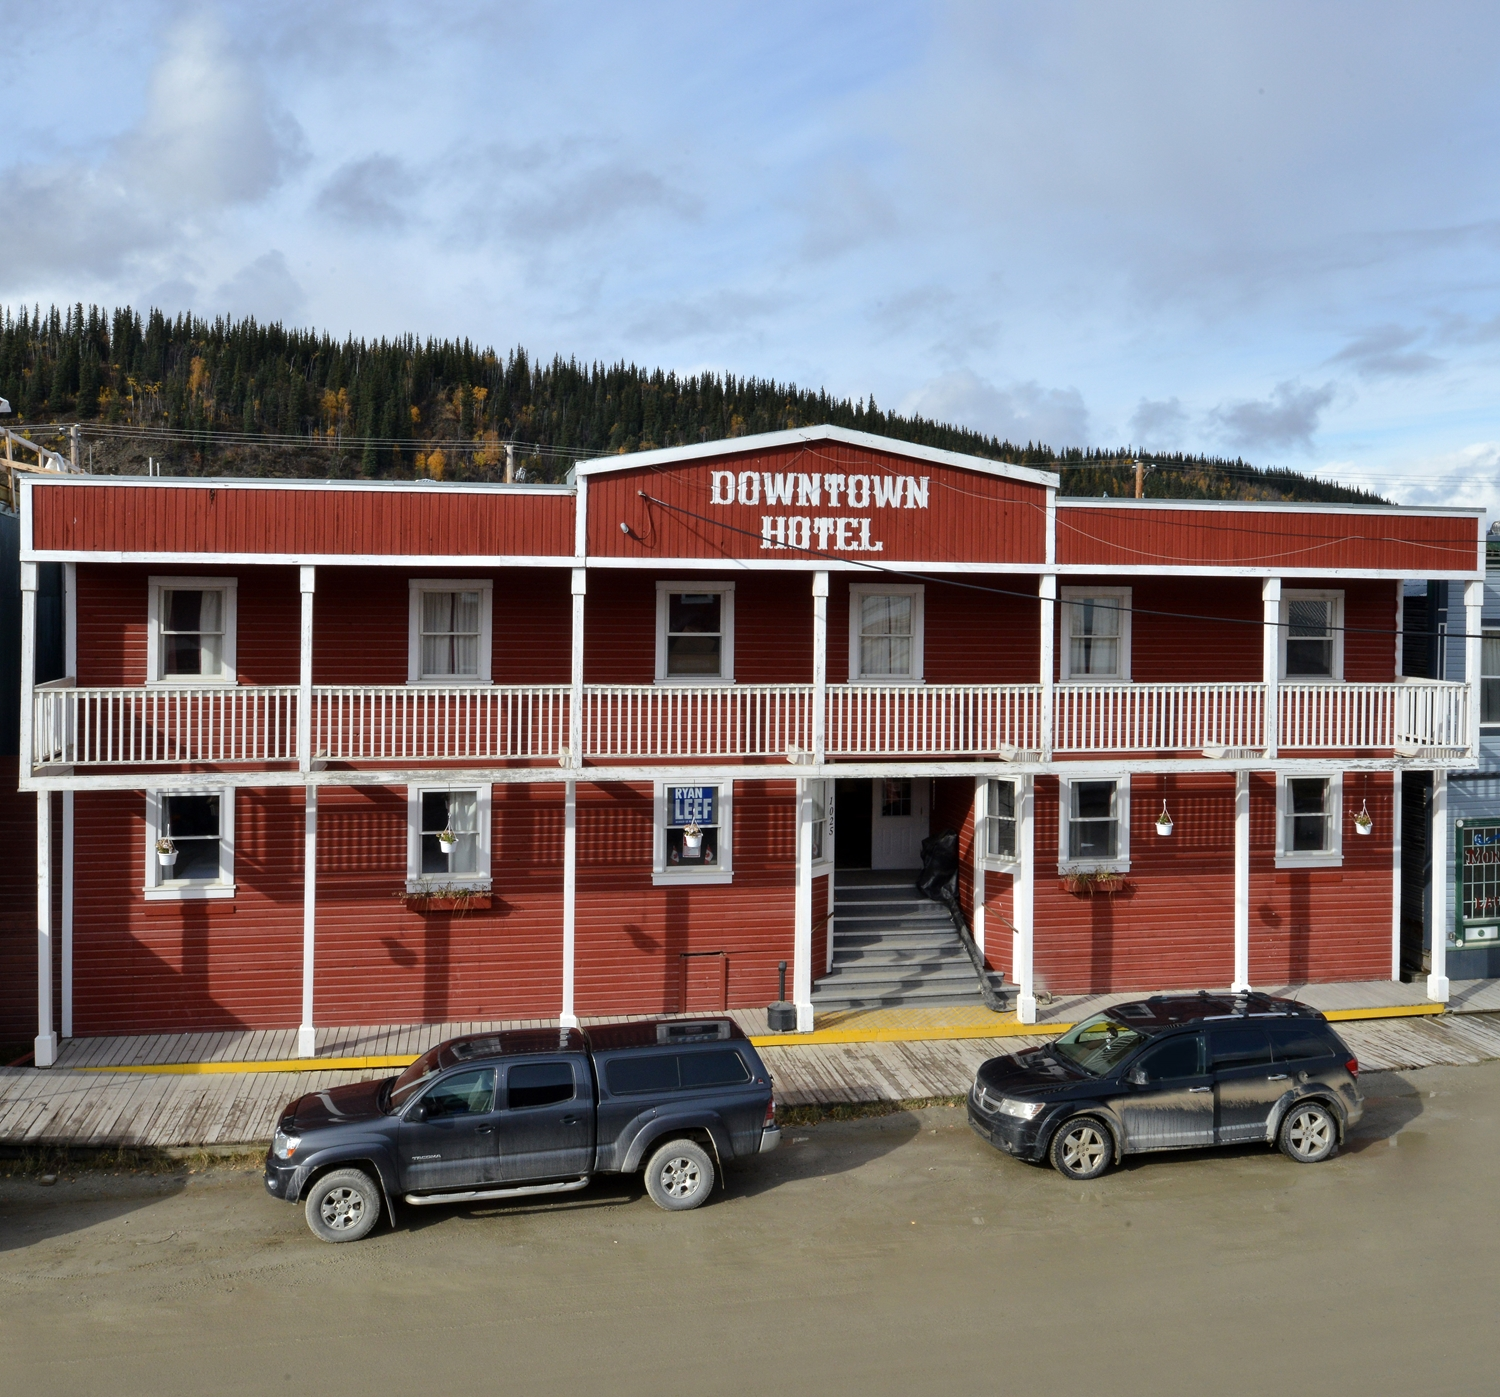 Exterior view - Canadas Best Value Inn - Downtown Hotel Dawson City